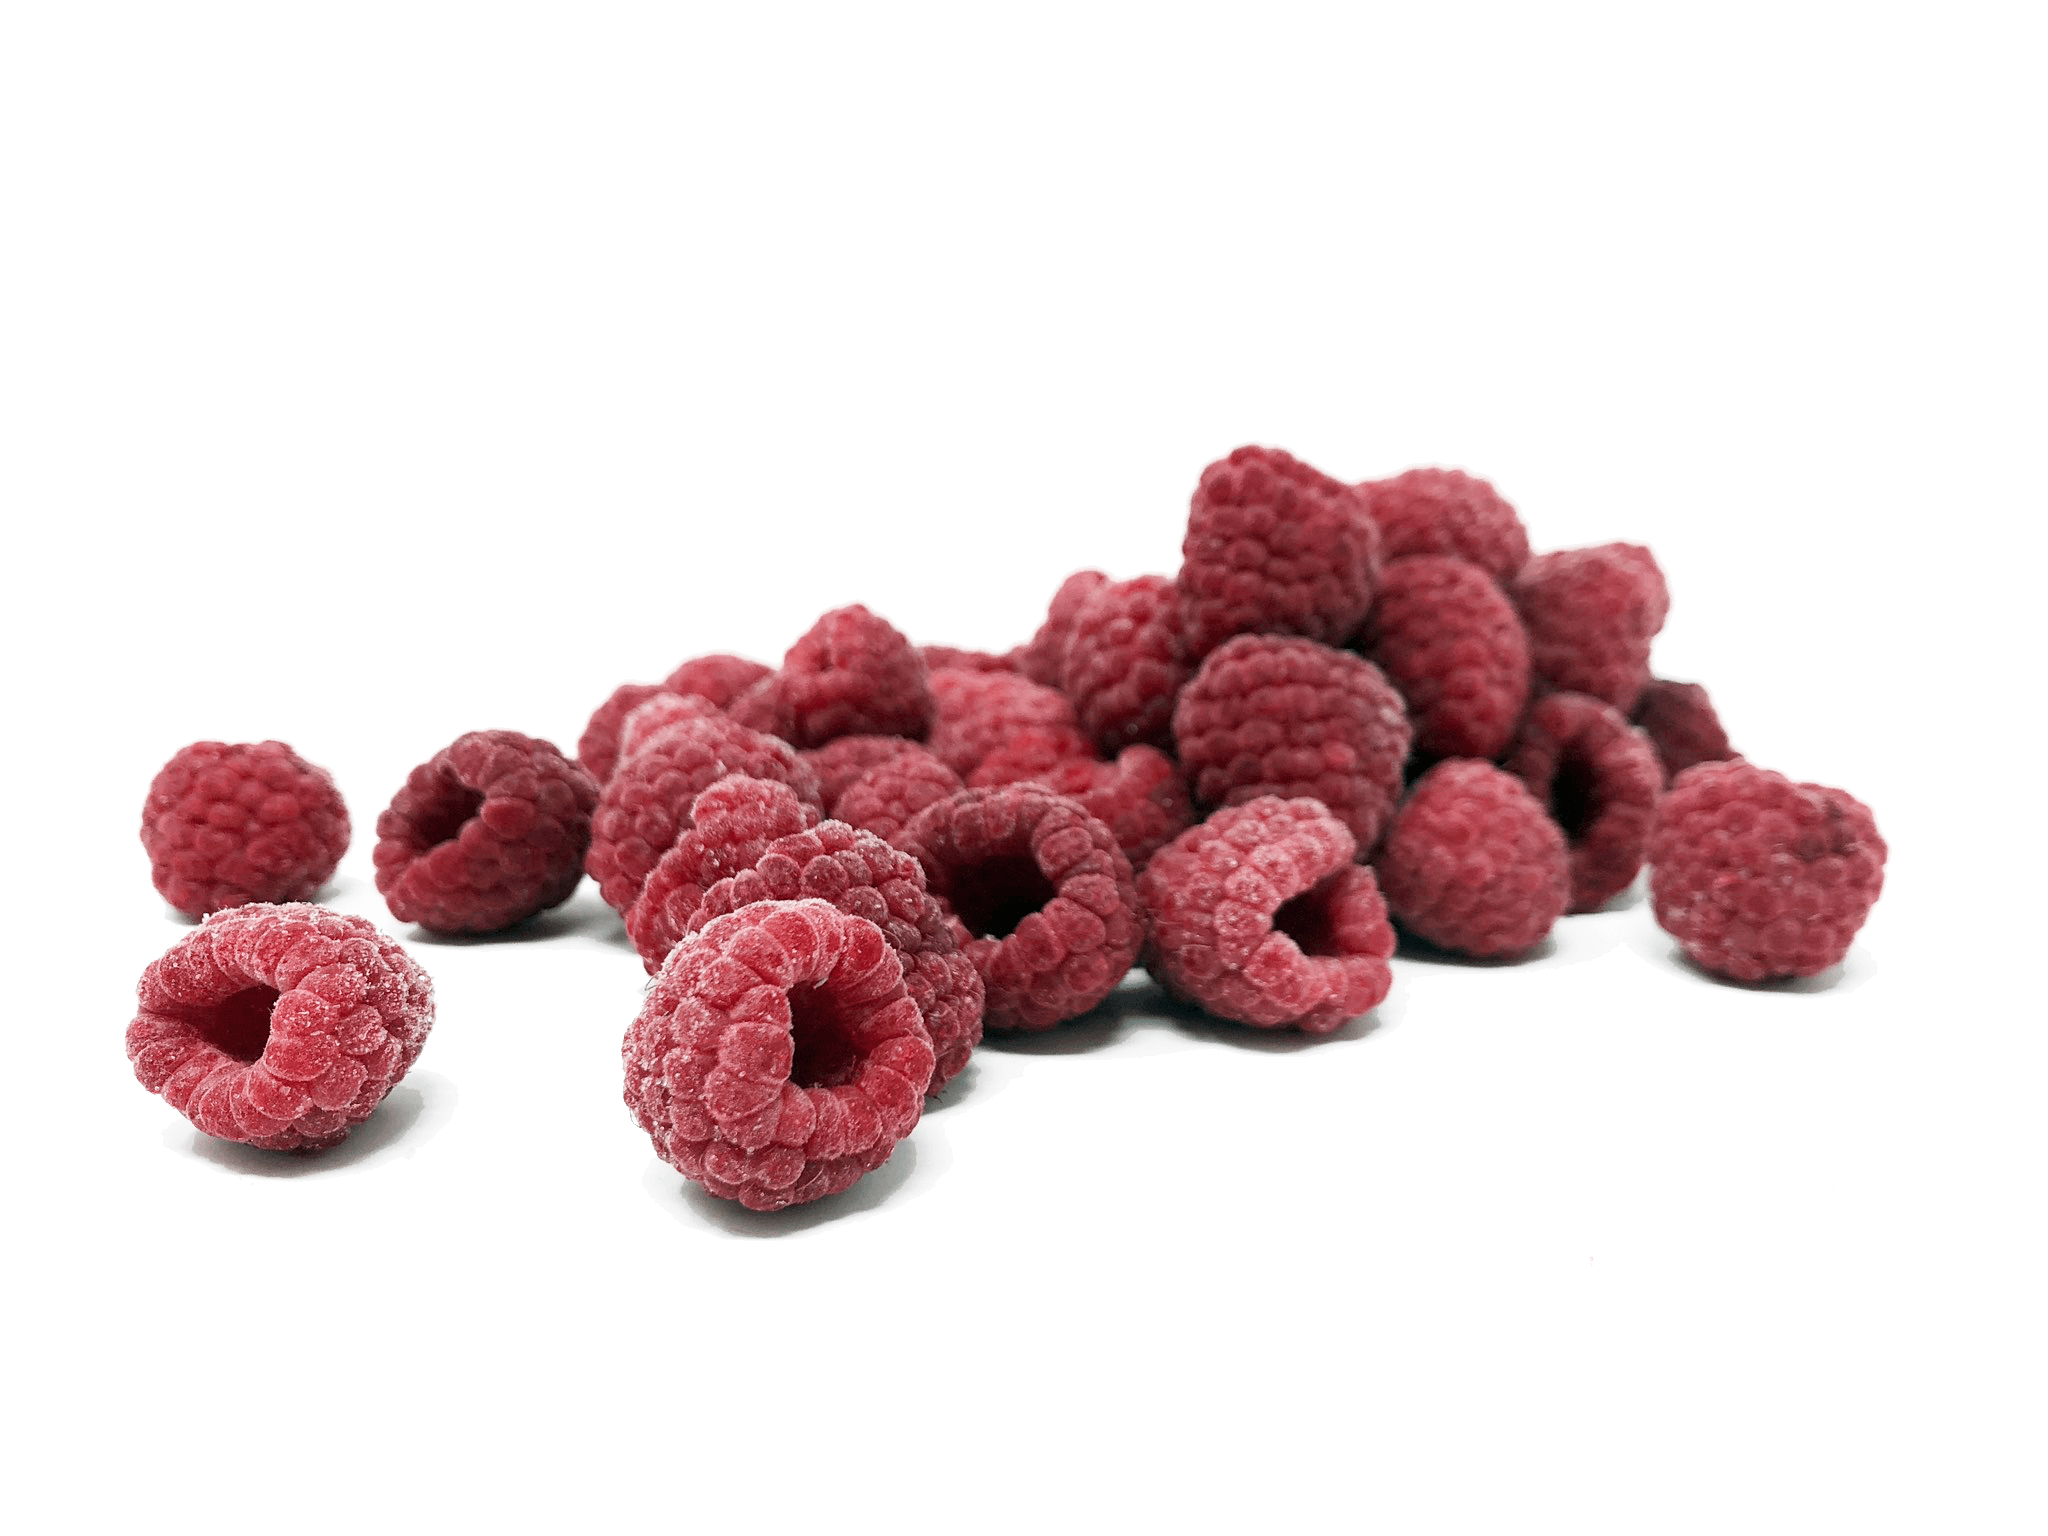 Freezing of fresh raspberries